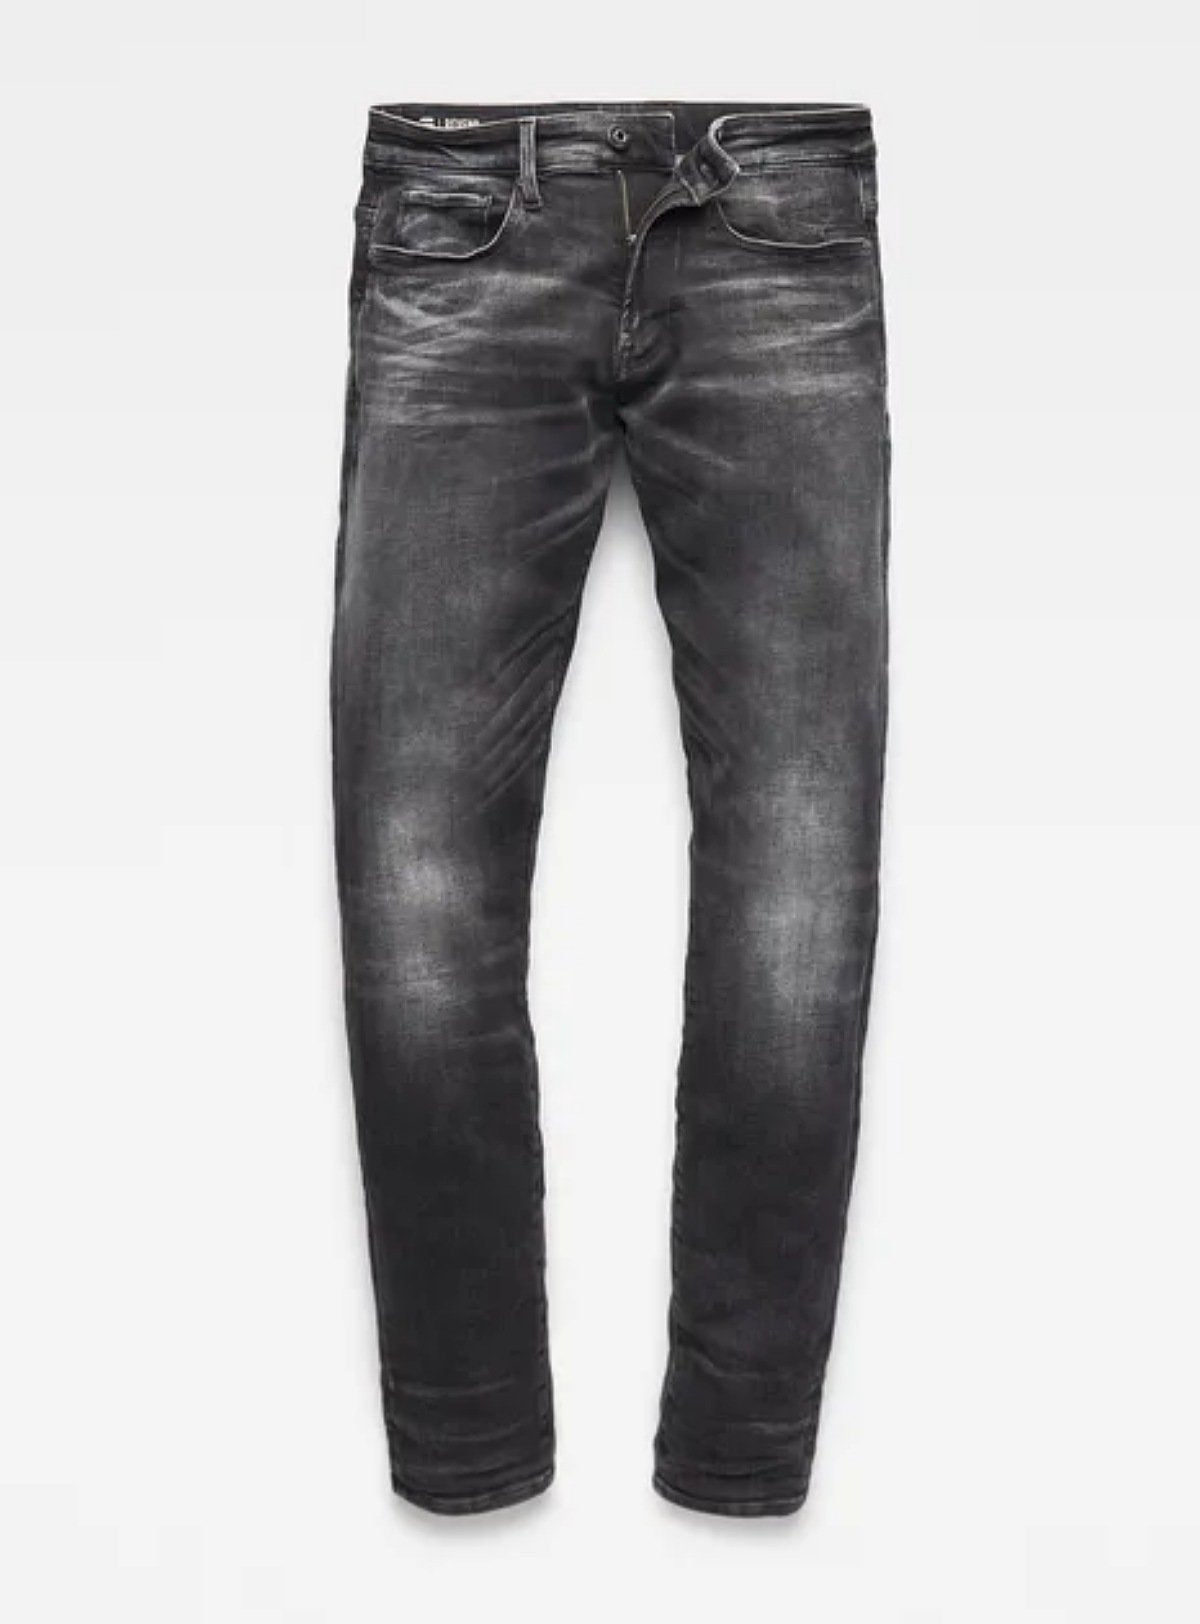 G-Star - Revend Skinny Jeans - Charcoal - 51010